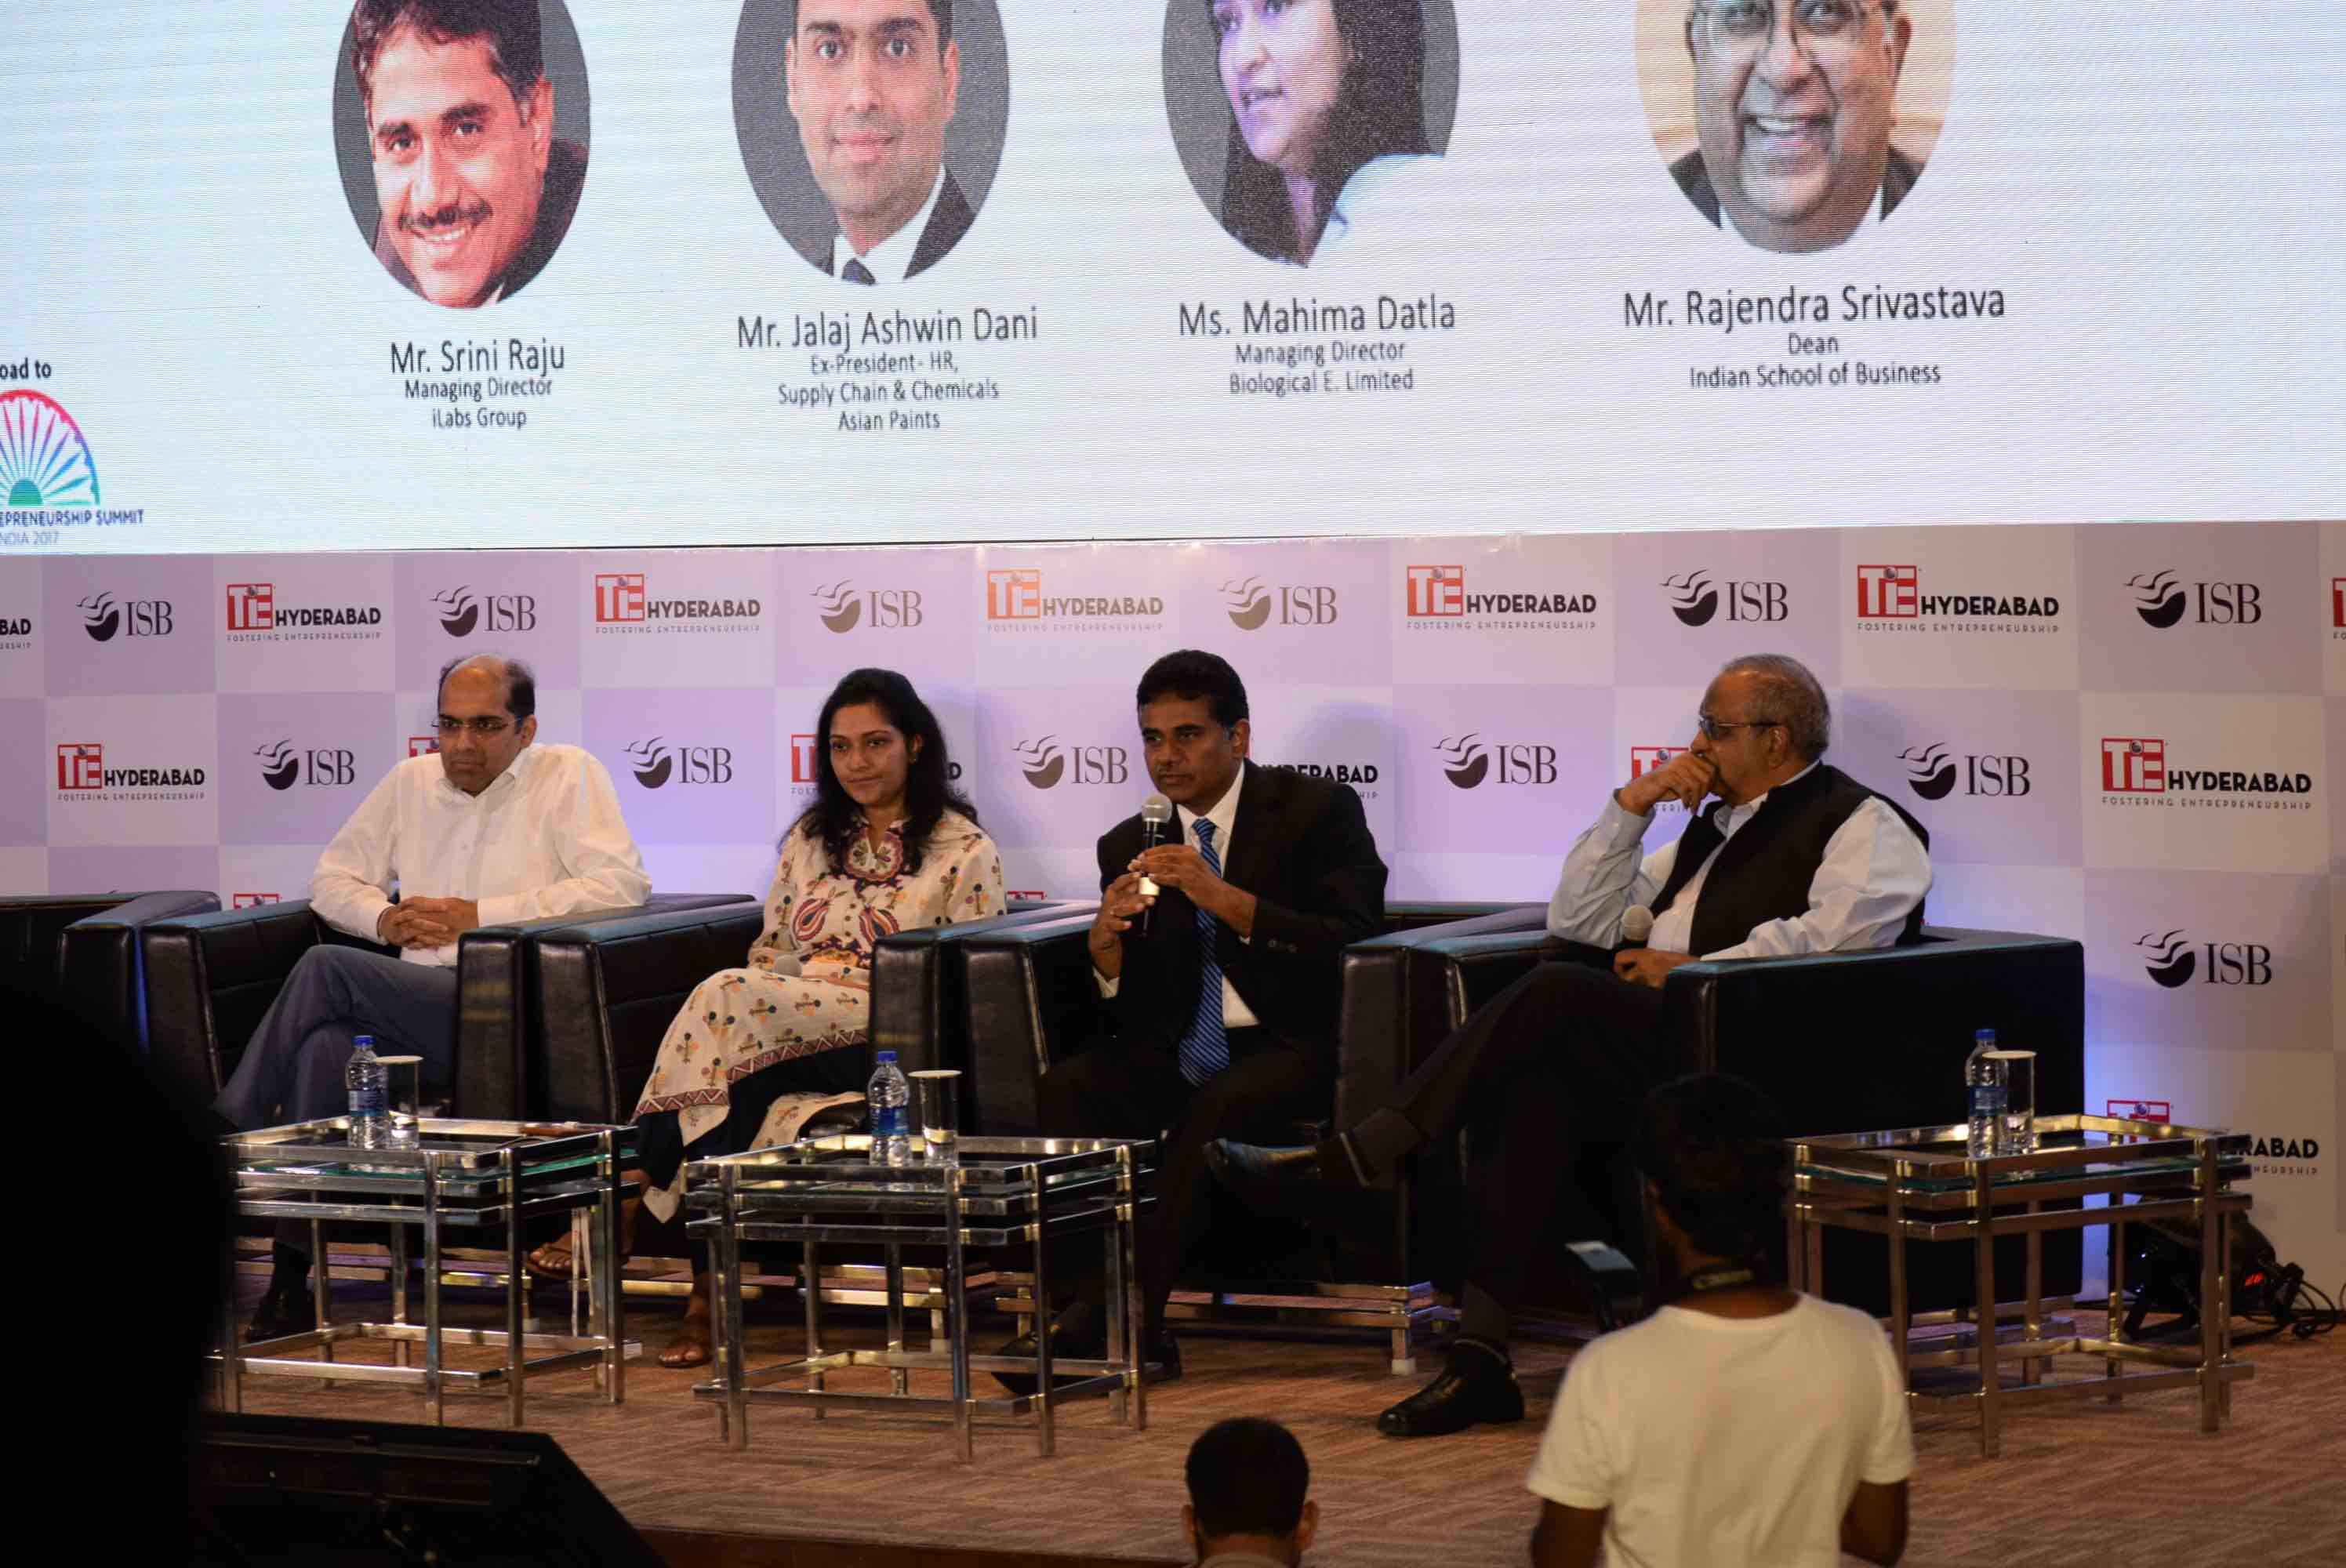 tie-isb-connect-2017-inagural-billion-dollar-panel-discussion